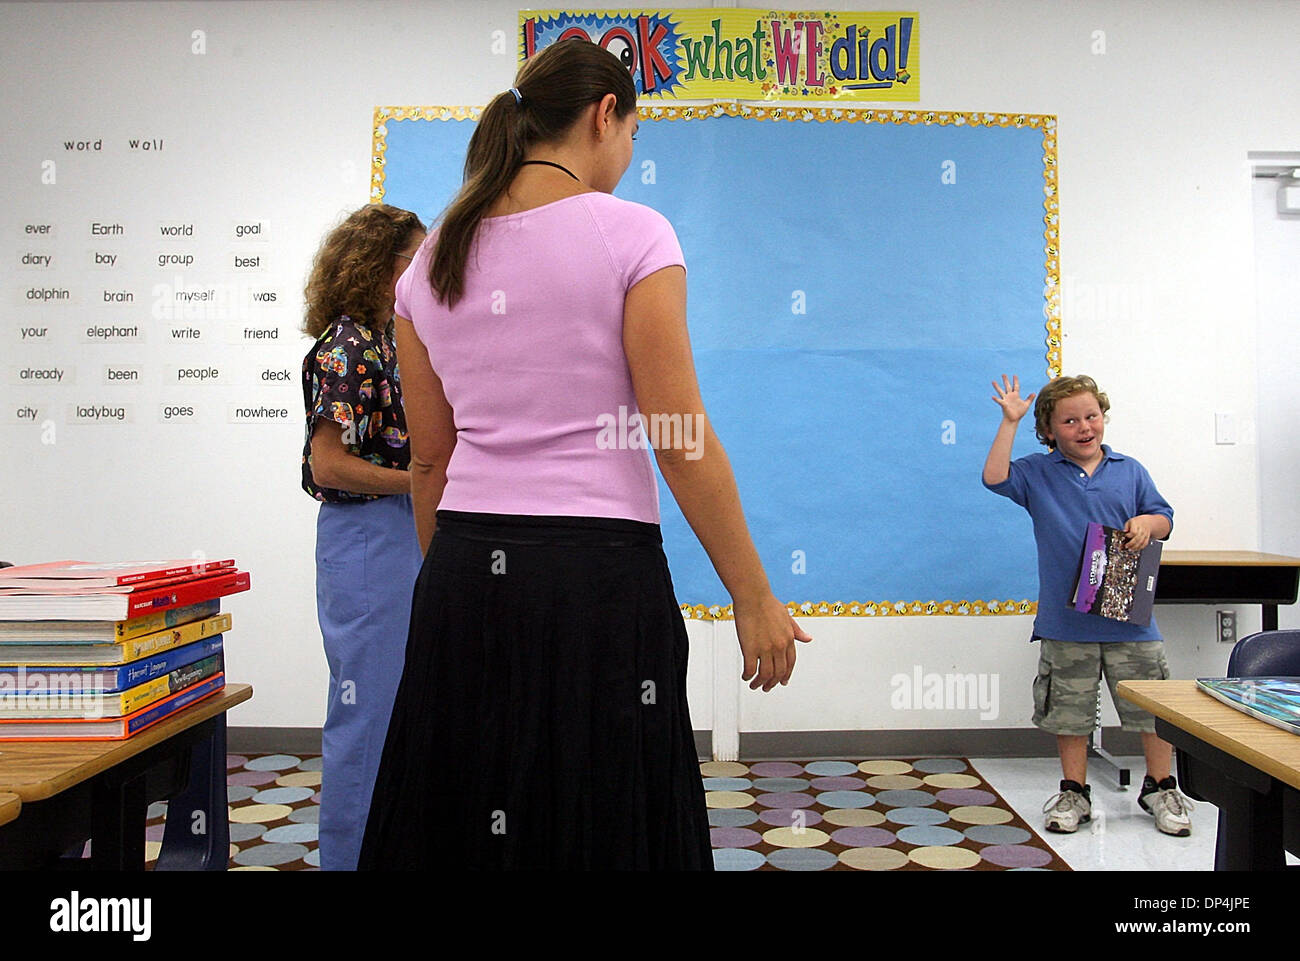 Aug 15, 2006; Boca Raton, FL, USA; achary Graham-Levine, 7, gives a precocious  wave goodbye to first-year 2nd-grade teacher Paige Schildkraut after Meet the Teacher Day at Addison Mizner Elementary School in Boca Raton Tuesday, Aug. 15, 2006. Meet the Teacher Day was Wed. and Paige got to meet many of her students for the first time and introduce herself to their parents. Mandator - Stock Image